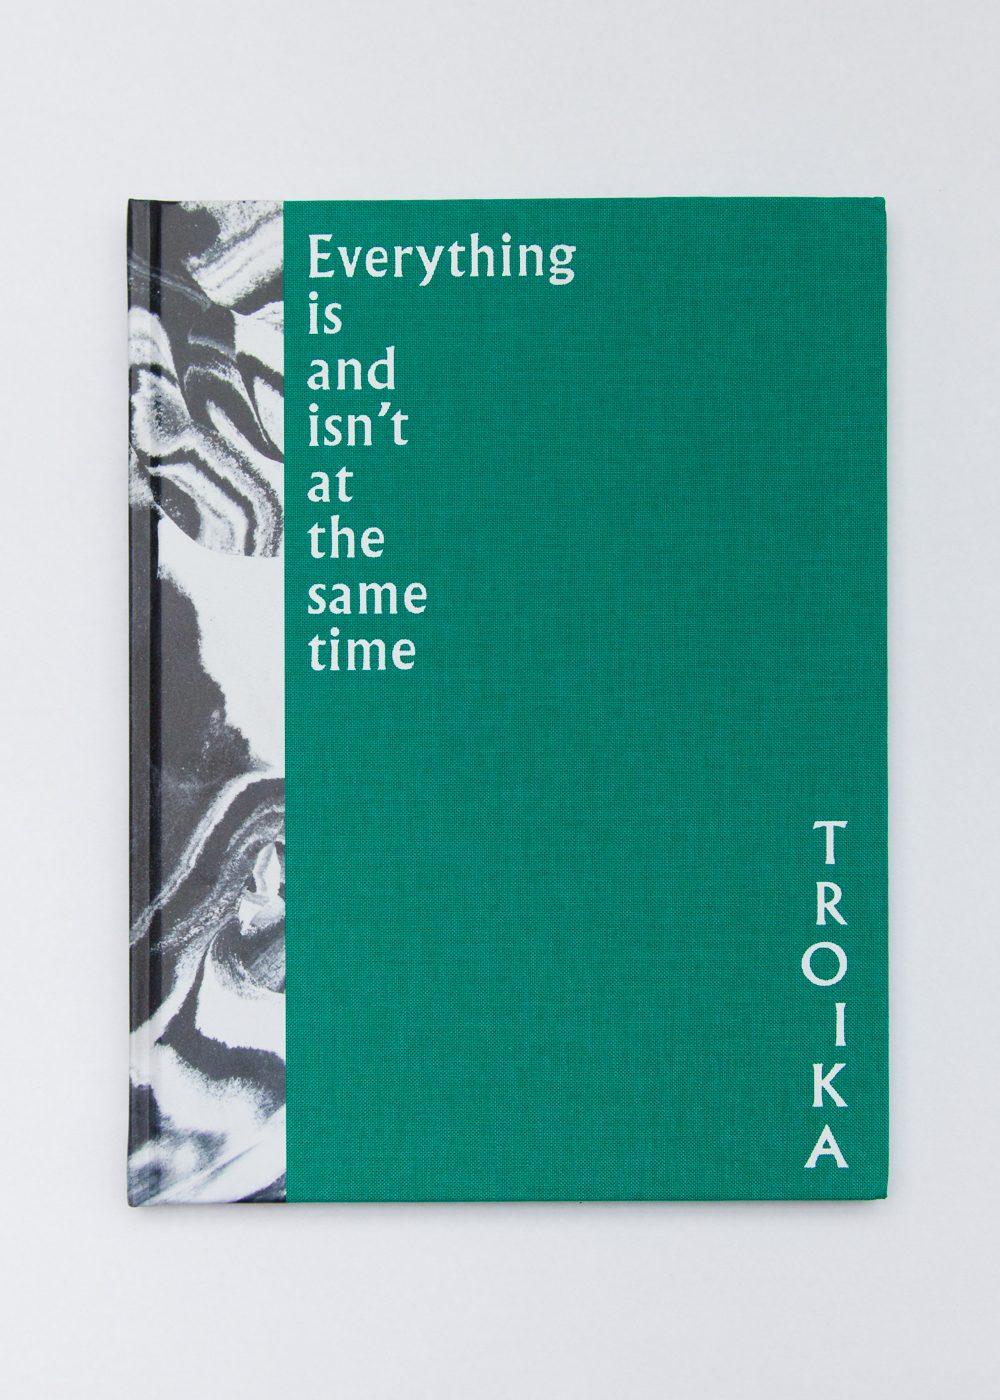 'Everything is and isn't at the same time' exhibition catalogue, Troika, 2016